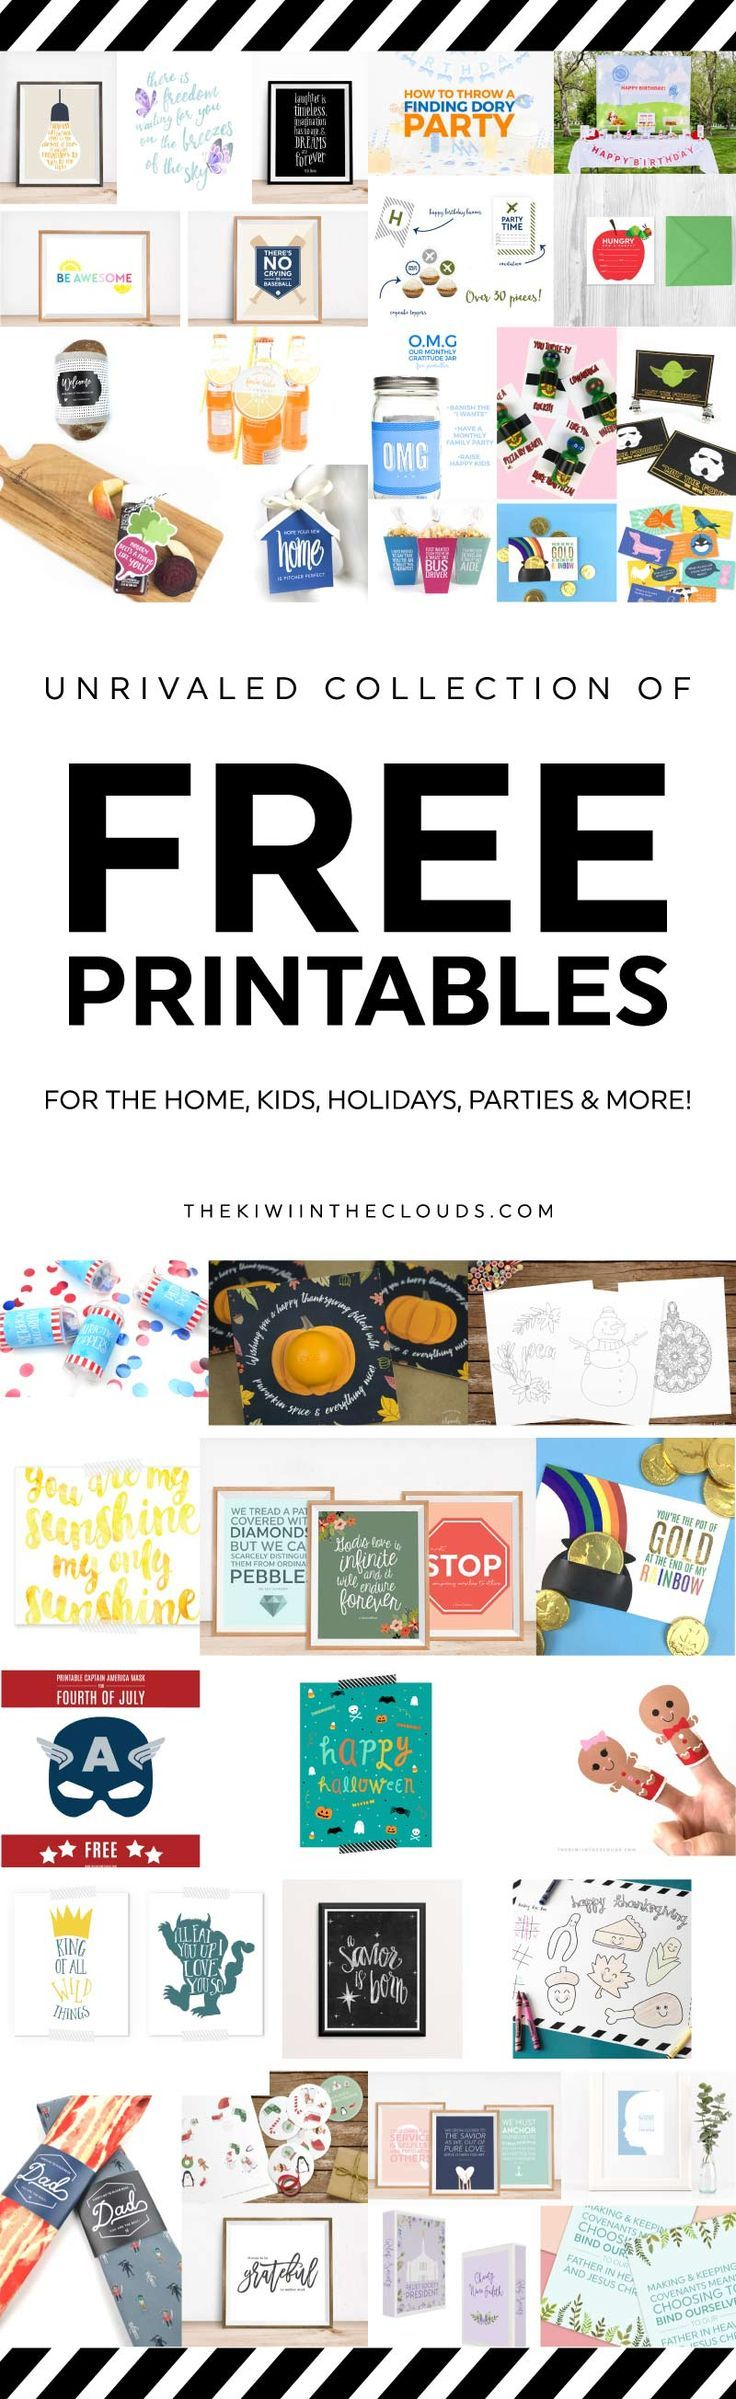 How to's : printables for the home | wall art printables | free printables